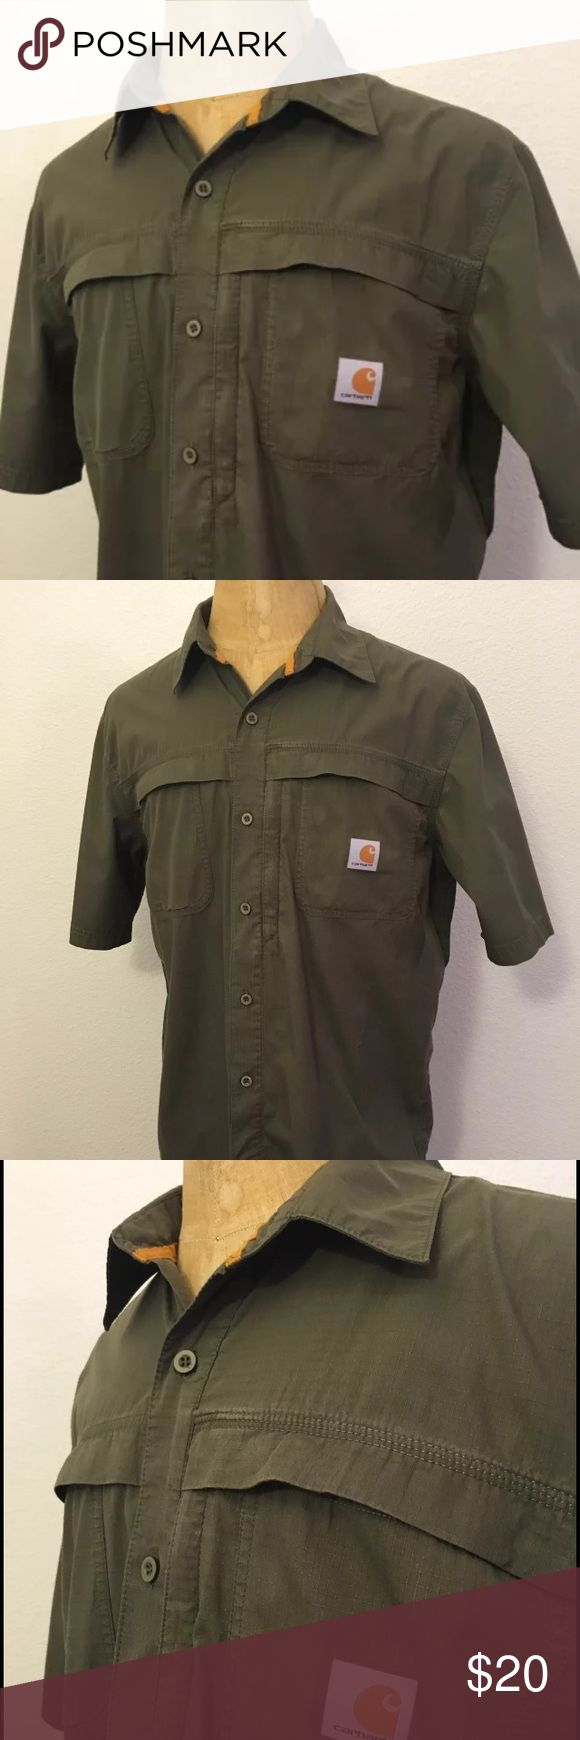 Mens carhartt size large short sleeve shirt green the oujays